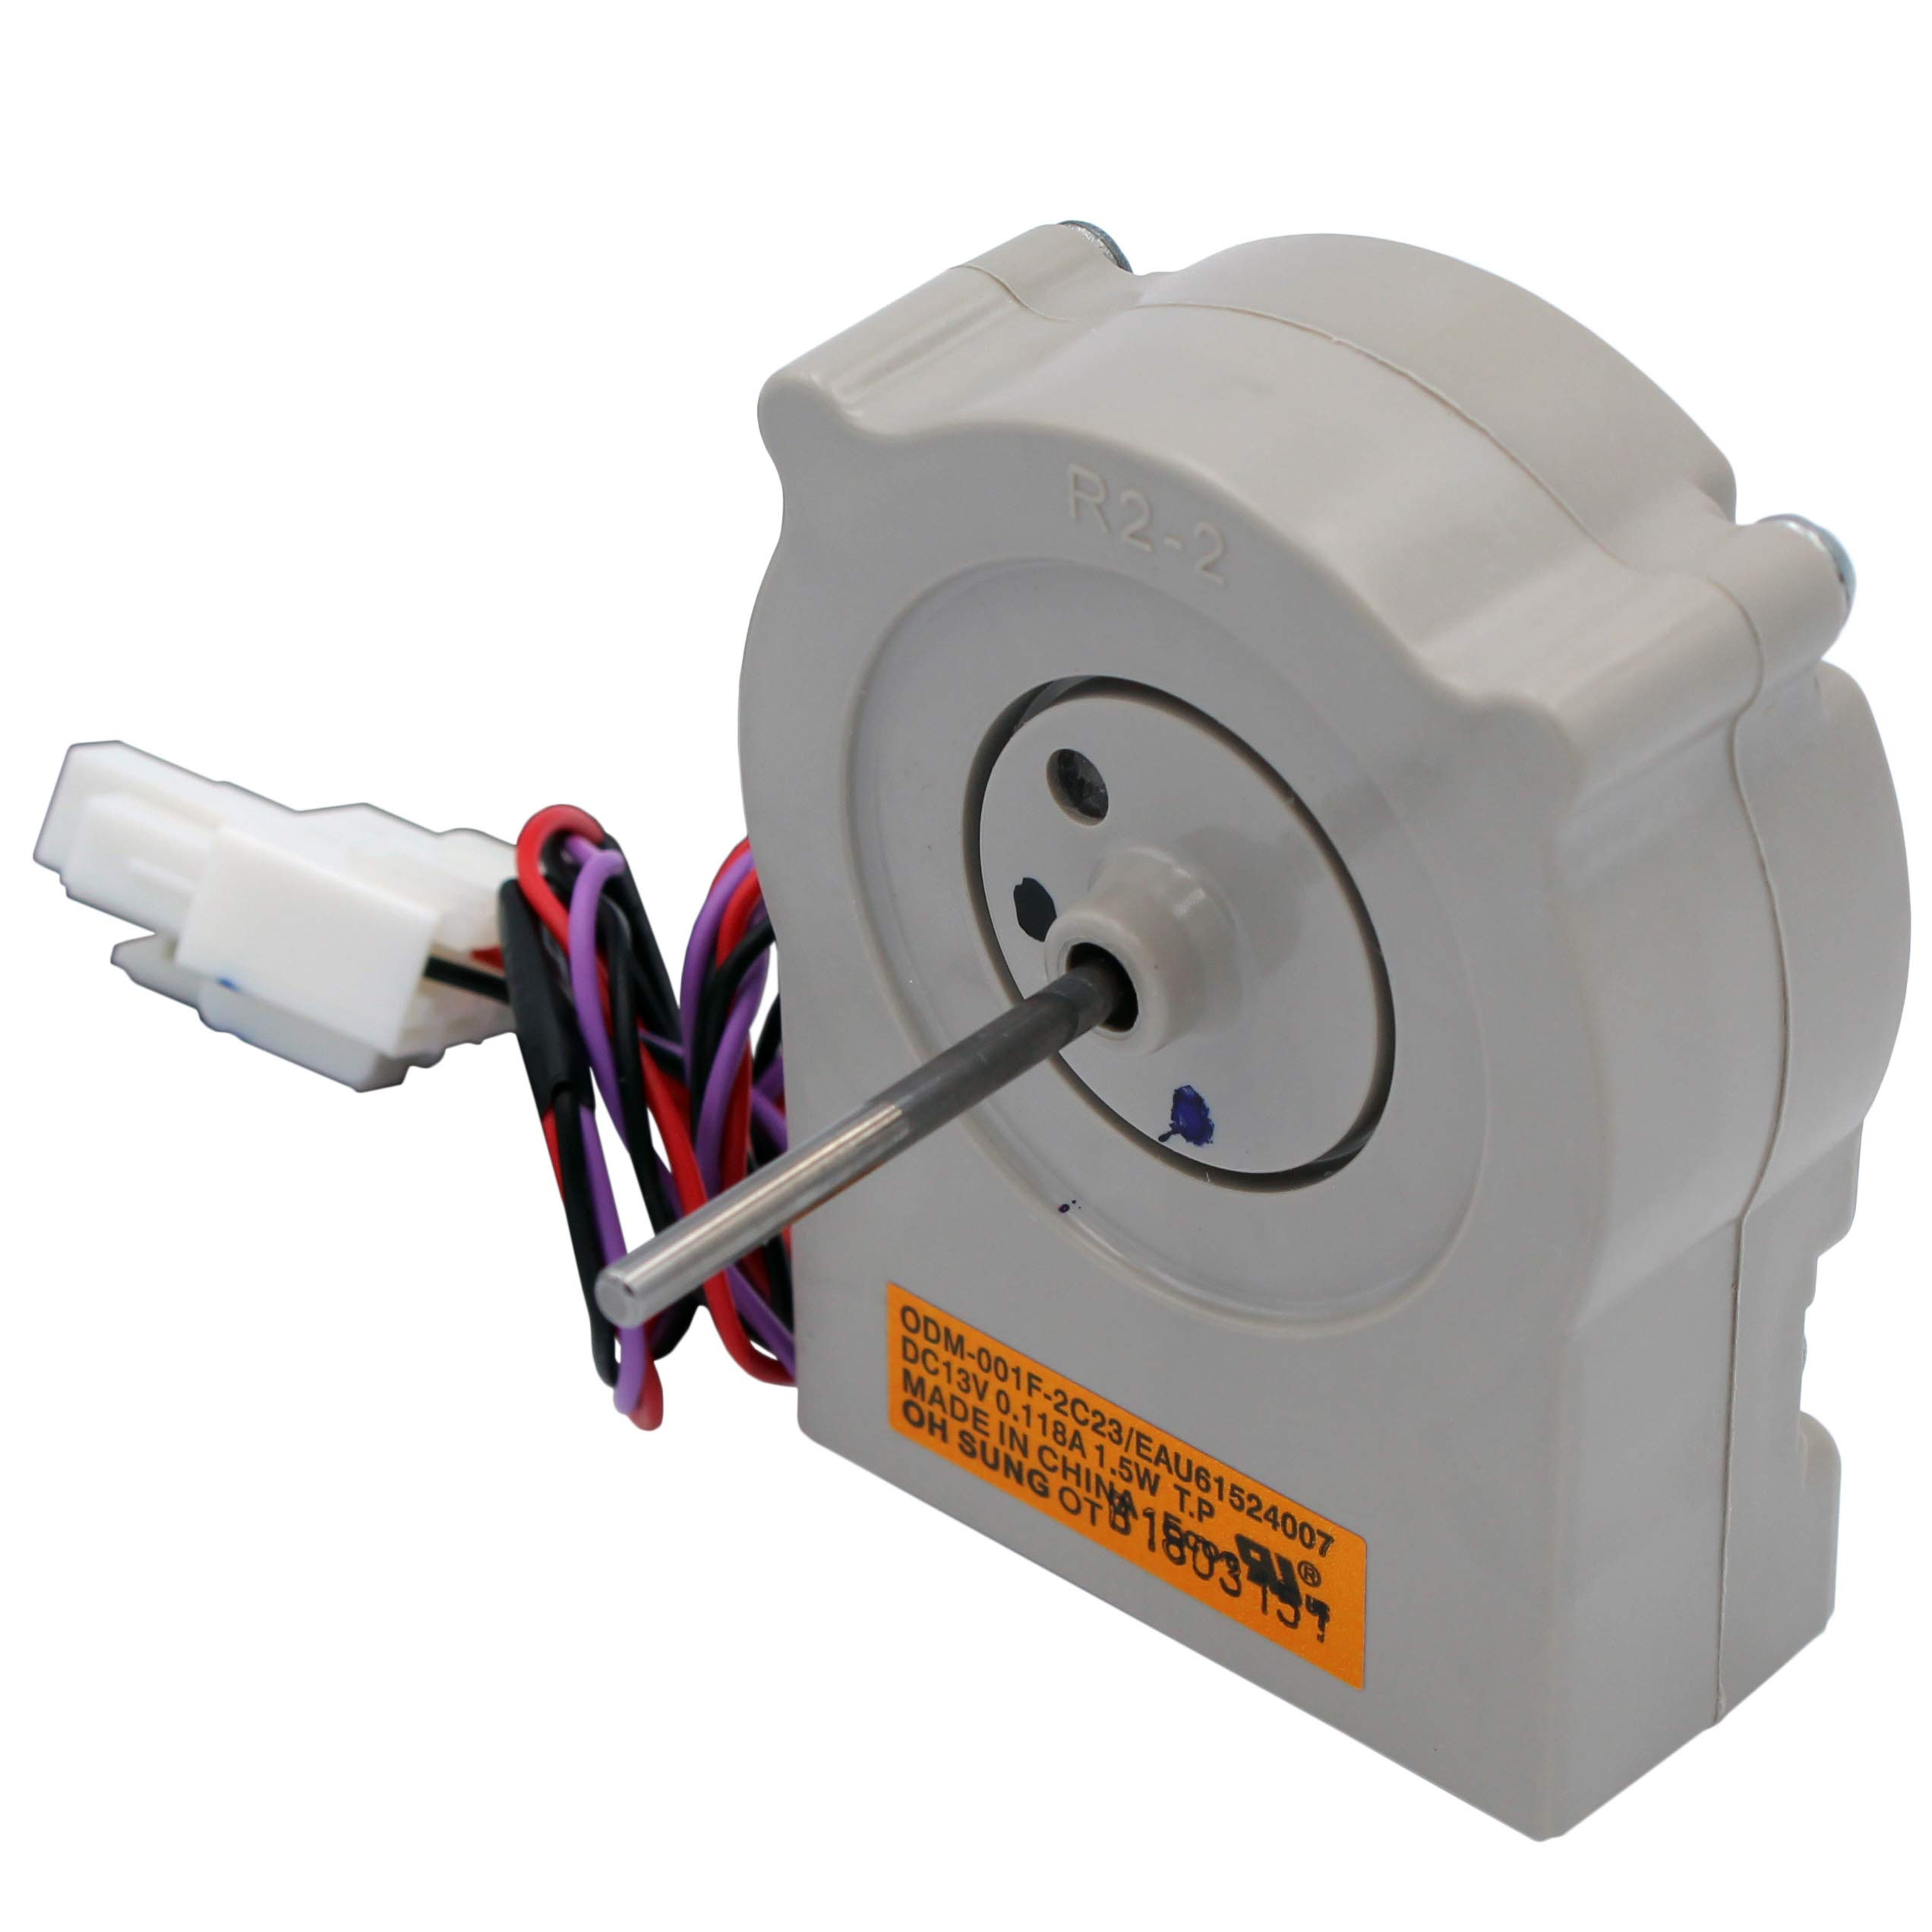 Supplying Demand EAU61524007 Evaporator Freezer Fan Motor Replaces EAU60694510 Compatible With LG by Supplying Demand